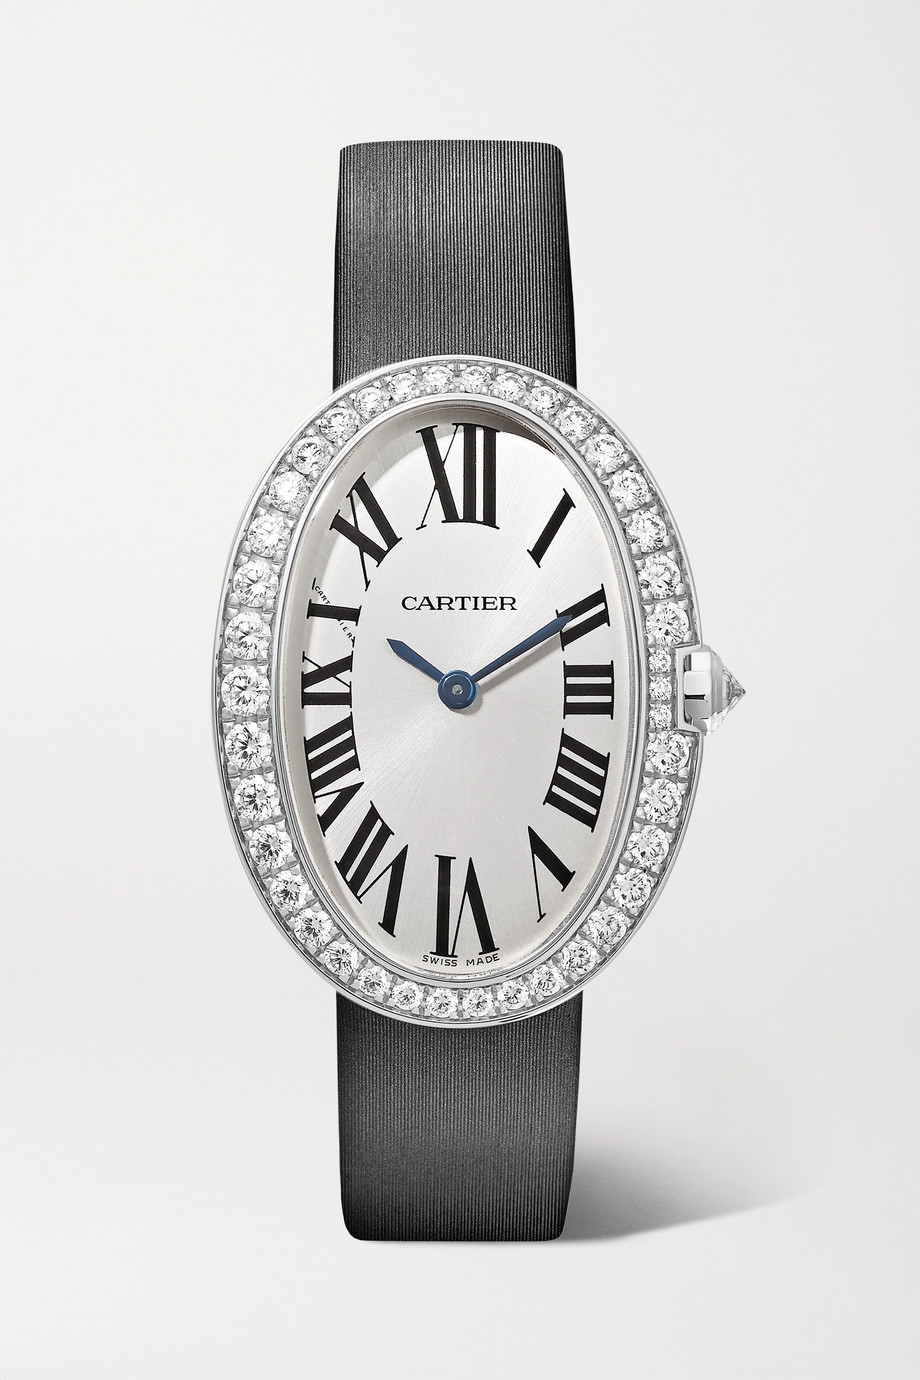 Cartier Baignoire 24.5mm small 18-karat white gold, toile brossée and diamond watch